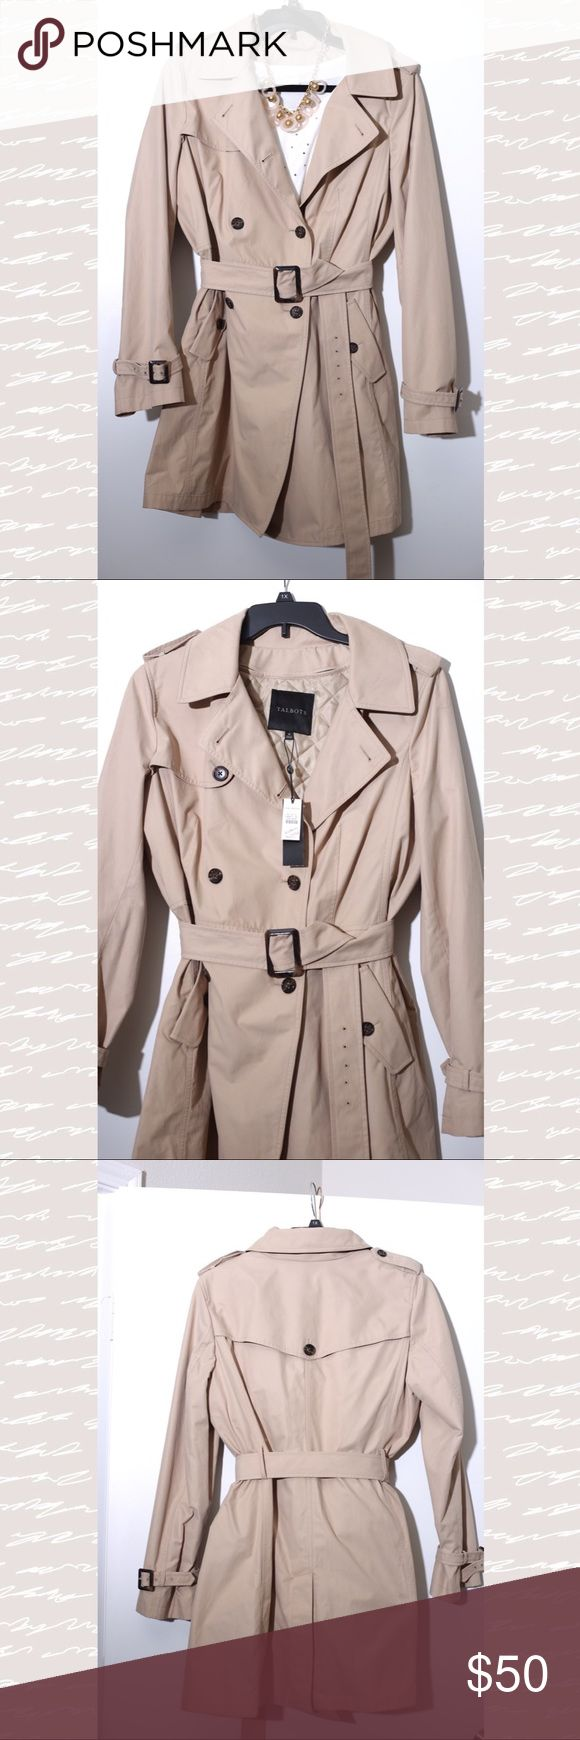 Talbots Trench Coat Classic coat that literally is timeless and will never go out of style. Coat is NWT. No stains, rips or tears. All buttons are on coat. Coat also has removable thinsulate liner! All items in my closet come from Smoke free and Pet Free home. * Necklace and Blouse are not for sale and are for advertising purposes only. All images are copyrighted by MichelleJo Photography. Talbots Jackets & Coats Trench Coats